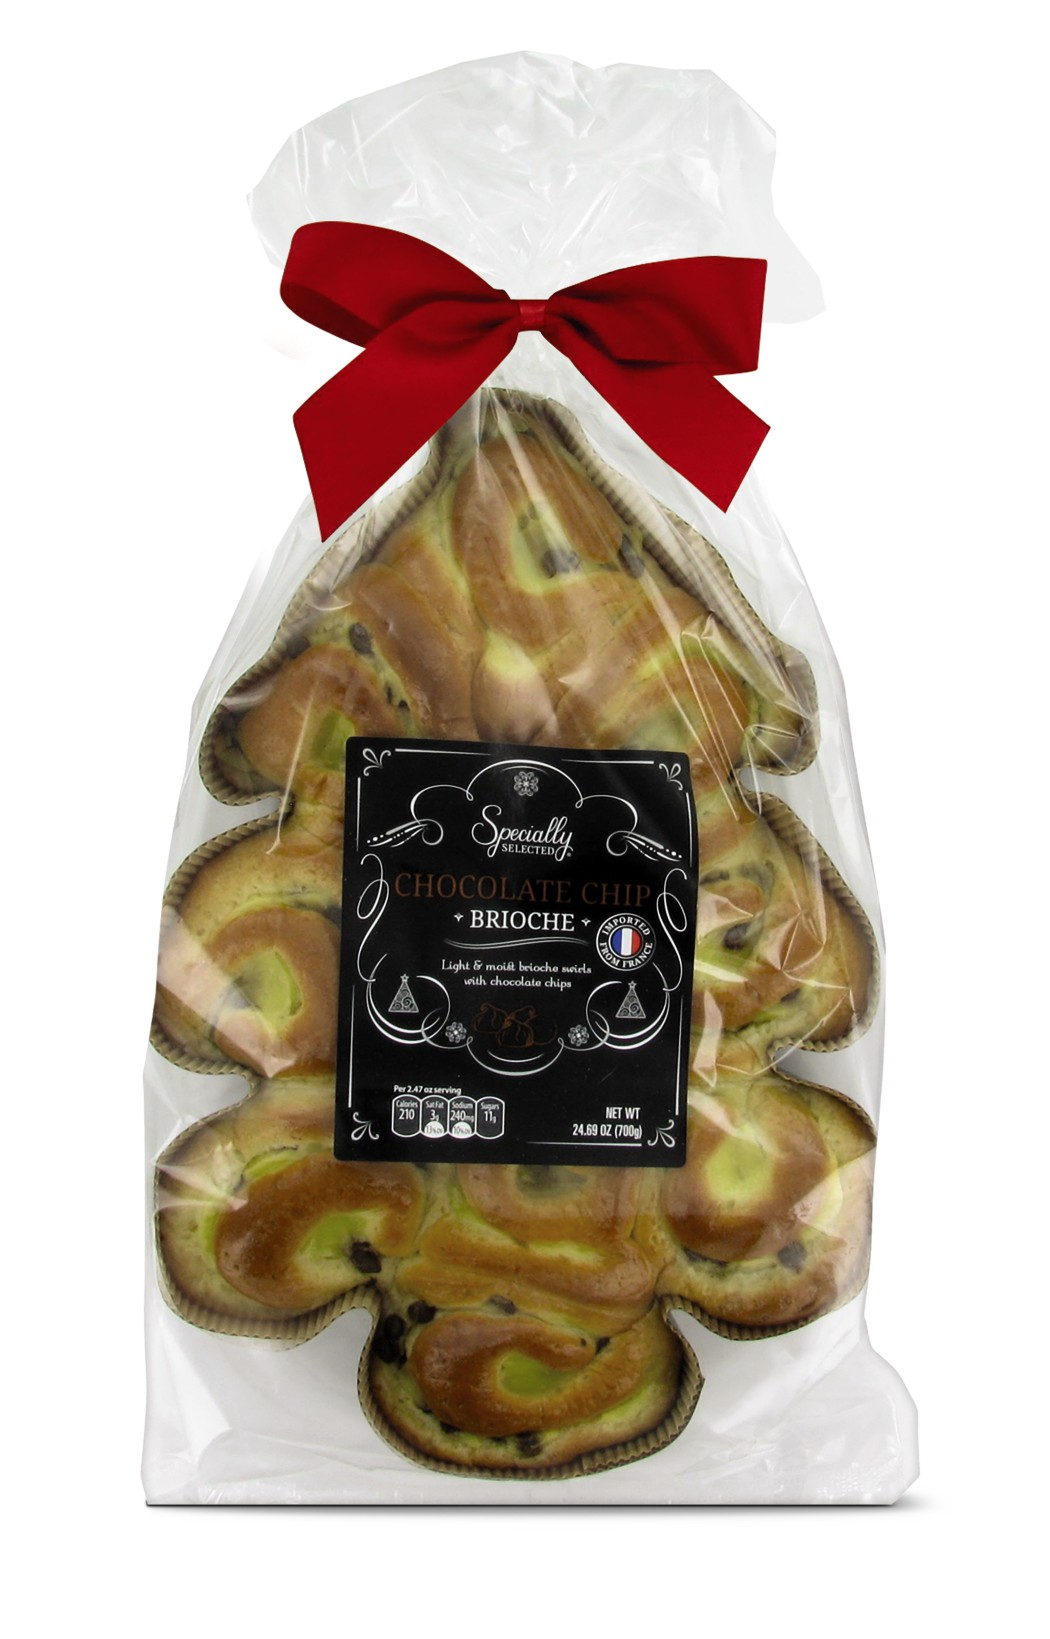 specially-selected-christmas-tree-brioche-chocolate-chip.jpg